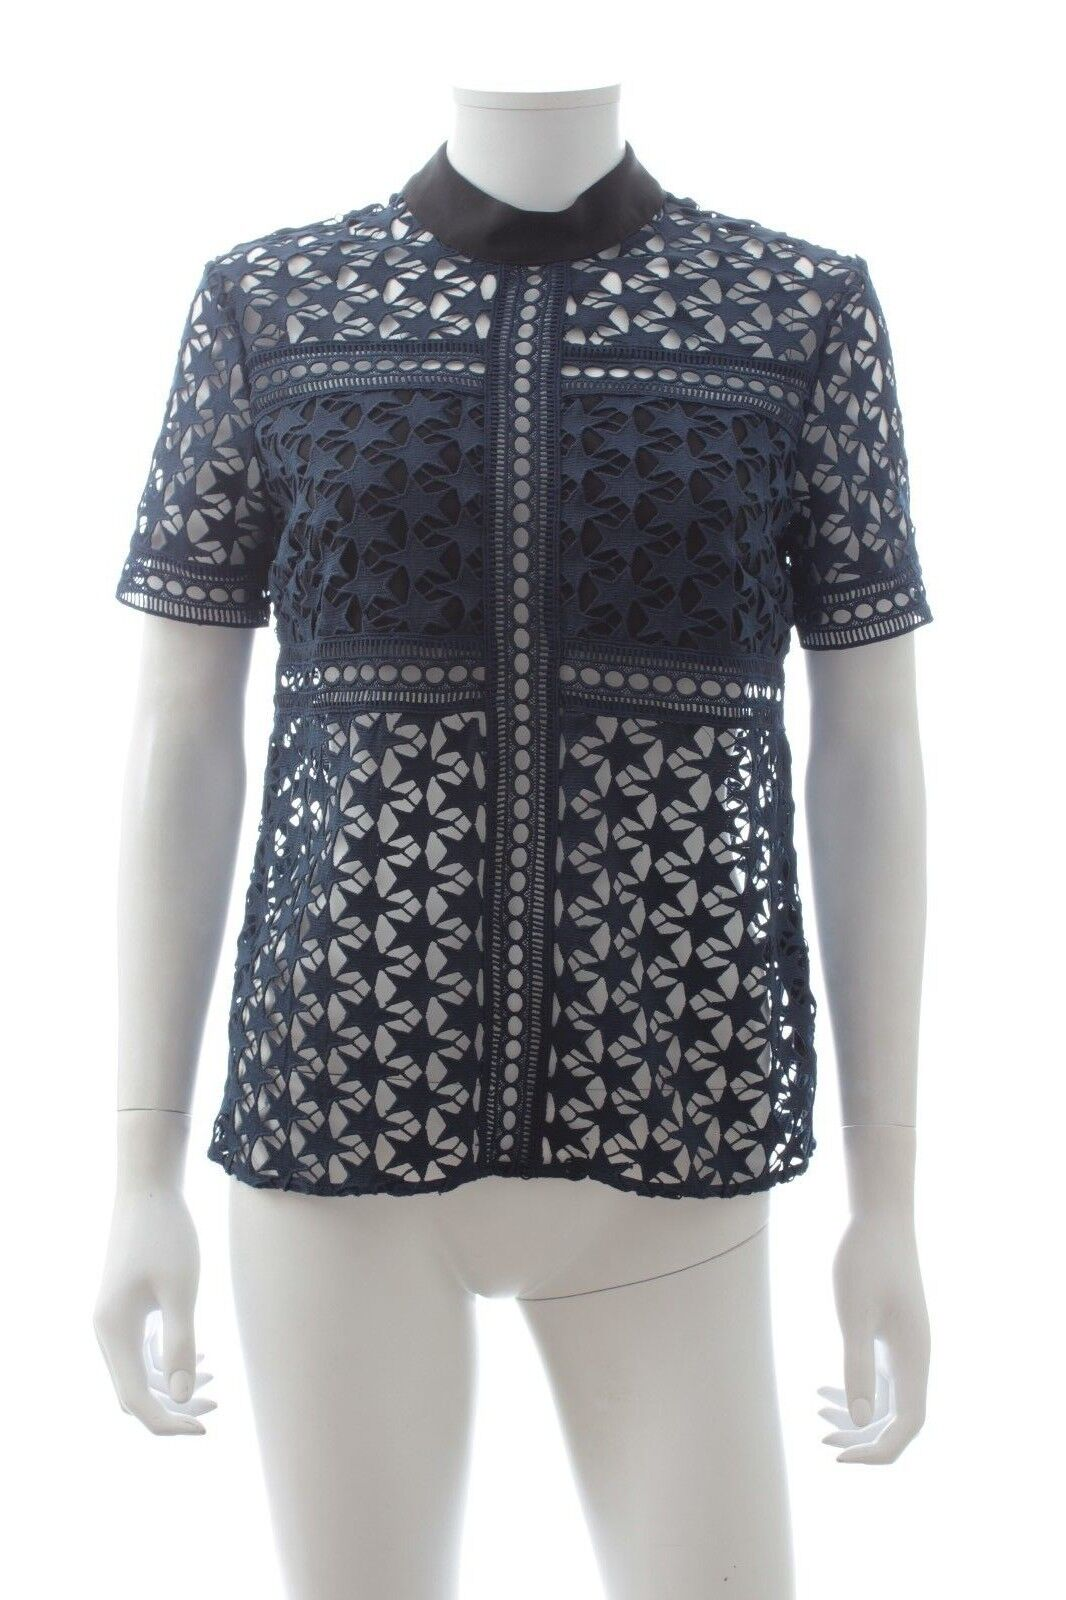 Self-Portrait Star Repeat Lace Top / Navy